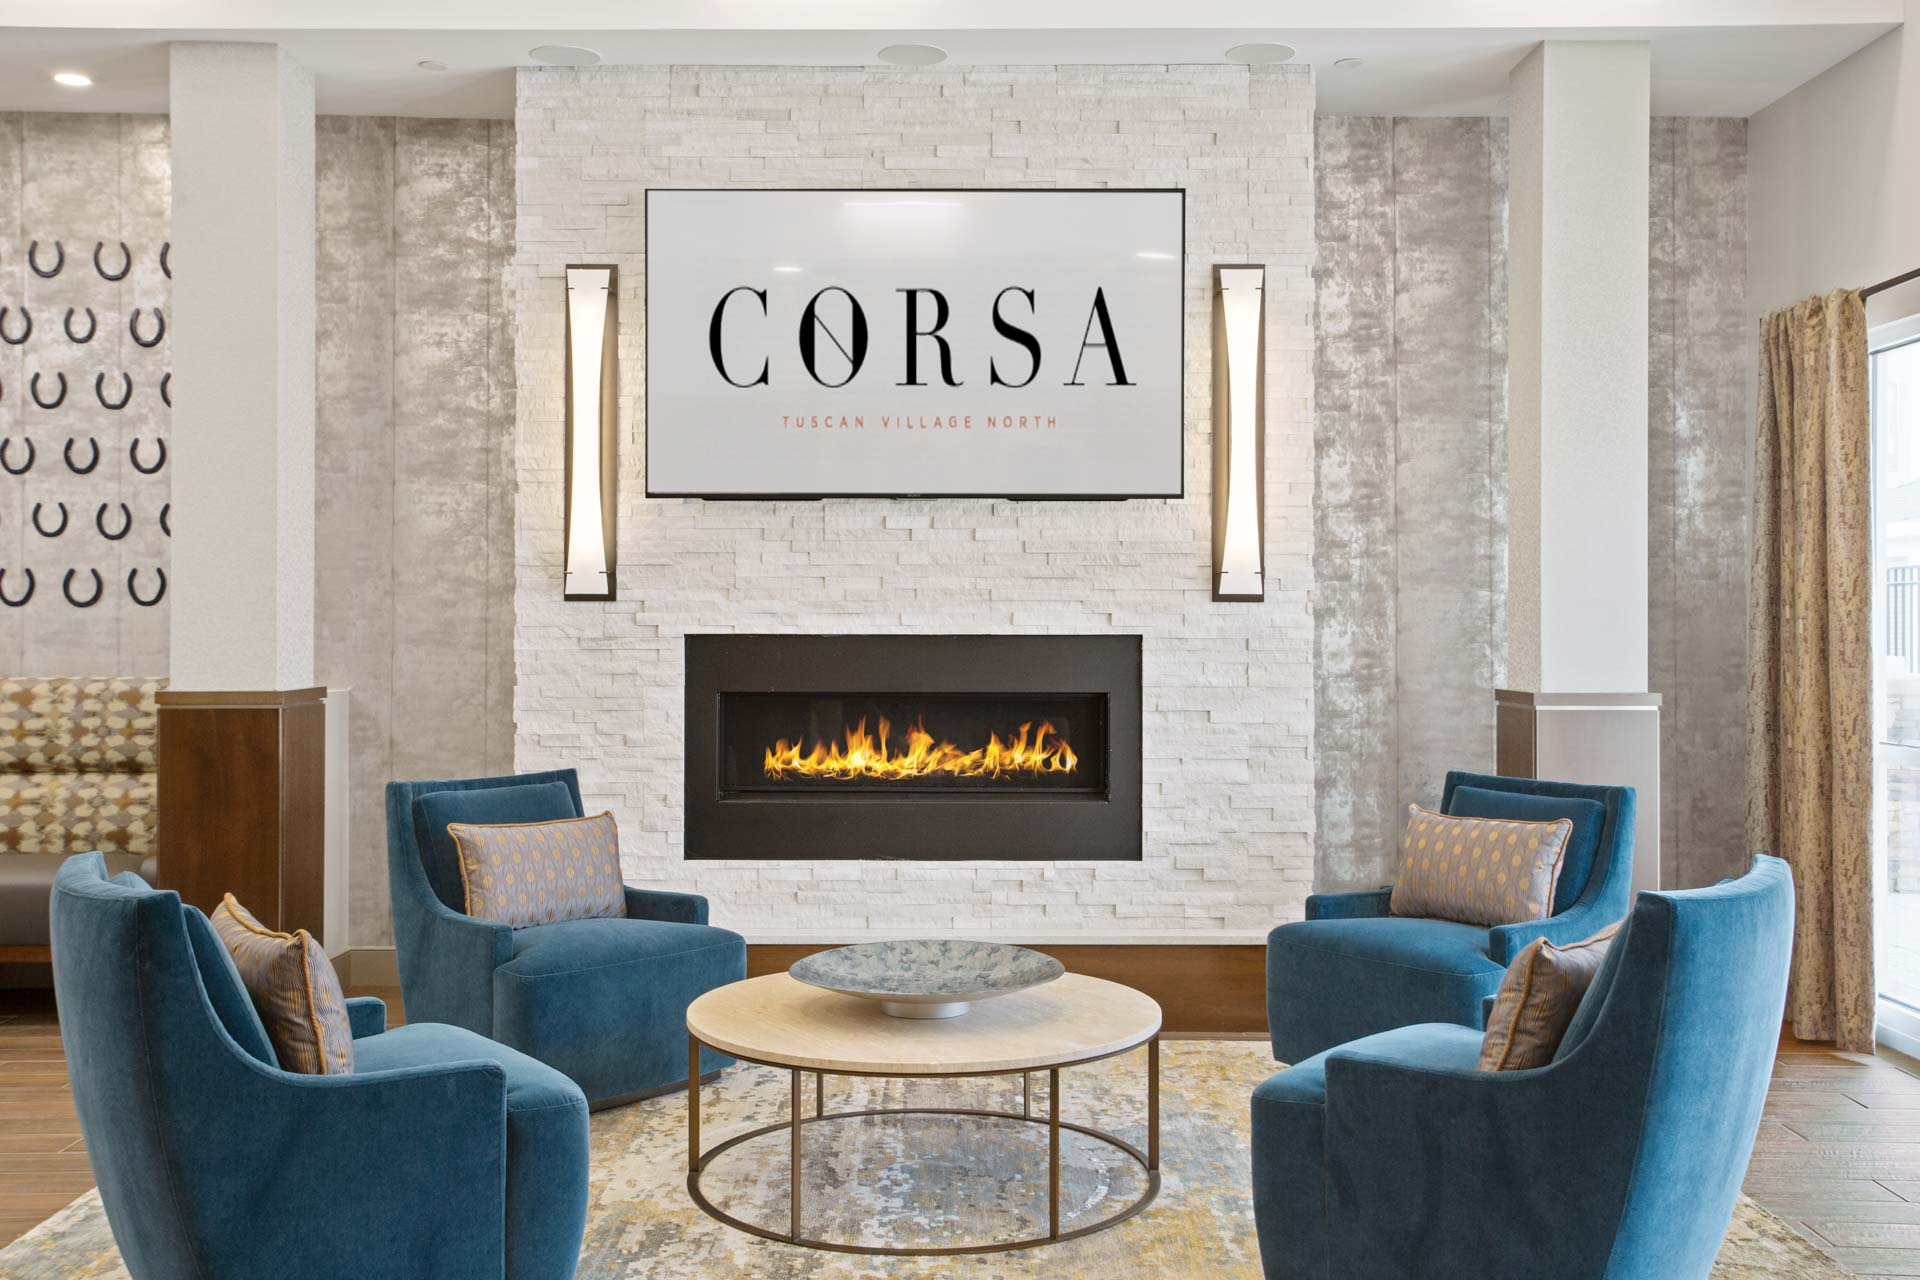 The lobby inside the Corsa Apartments in Salem, New Hampshire